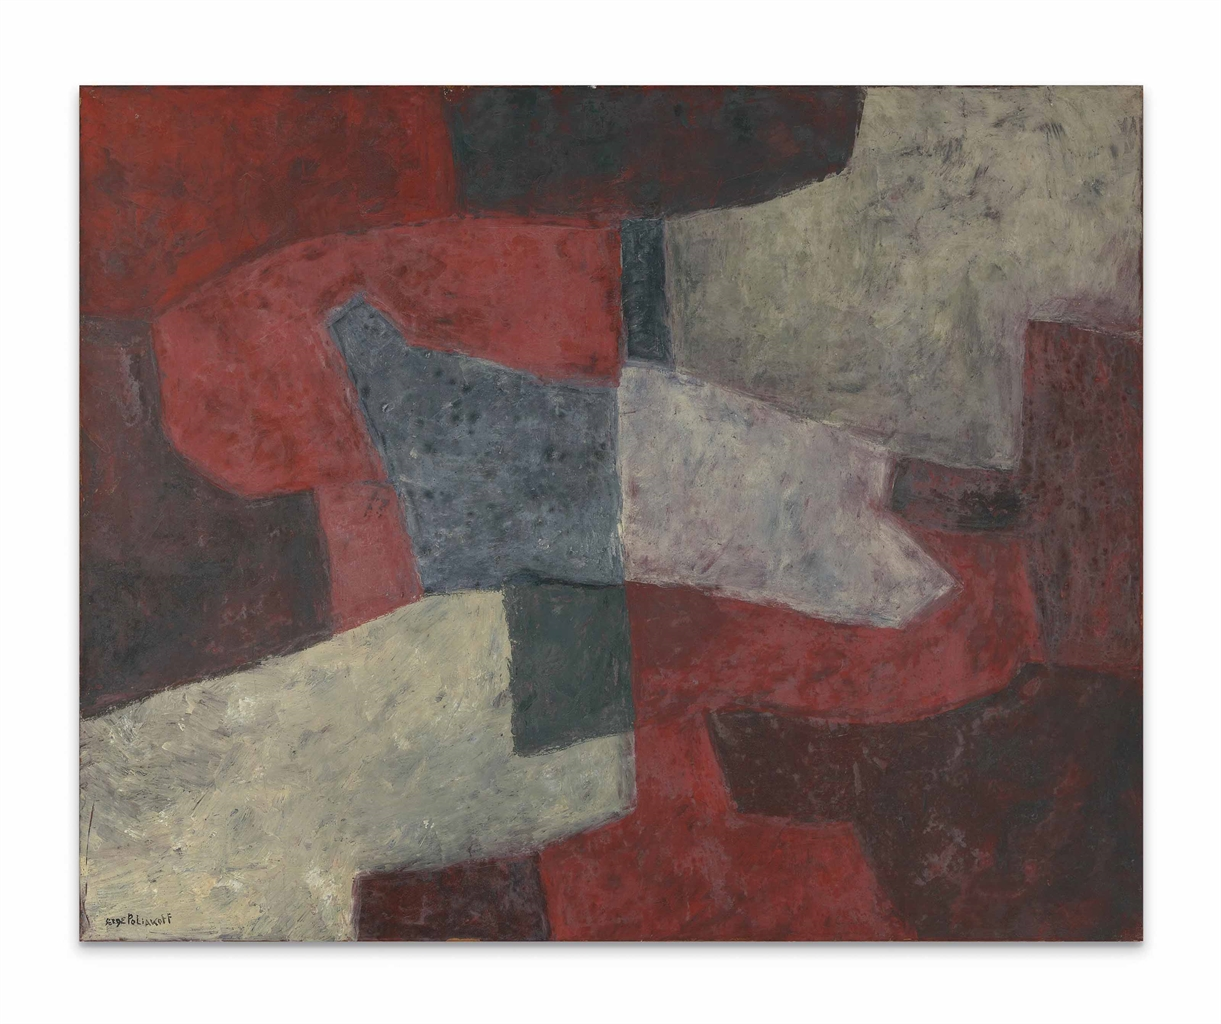 Serge Poliakoff-Bleu gris et rouge (Blue Grey and Red-1963